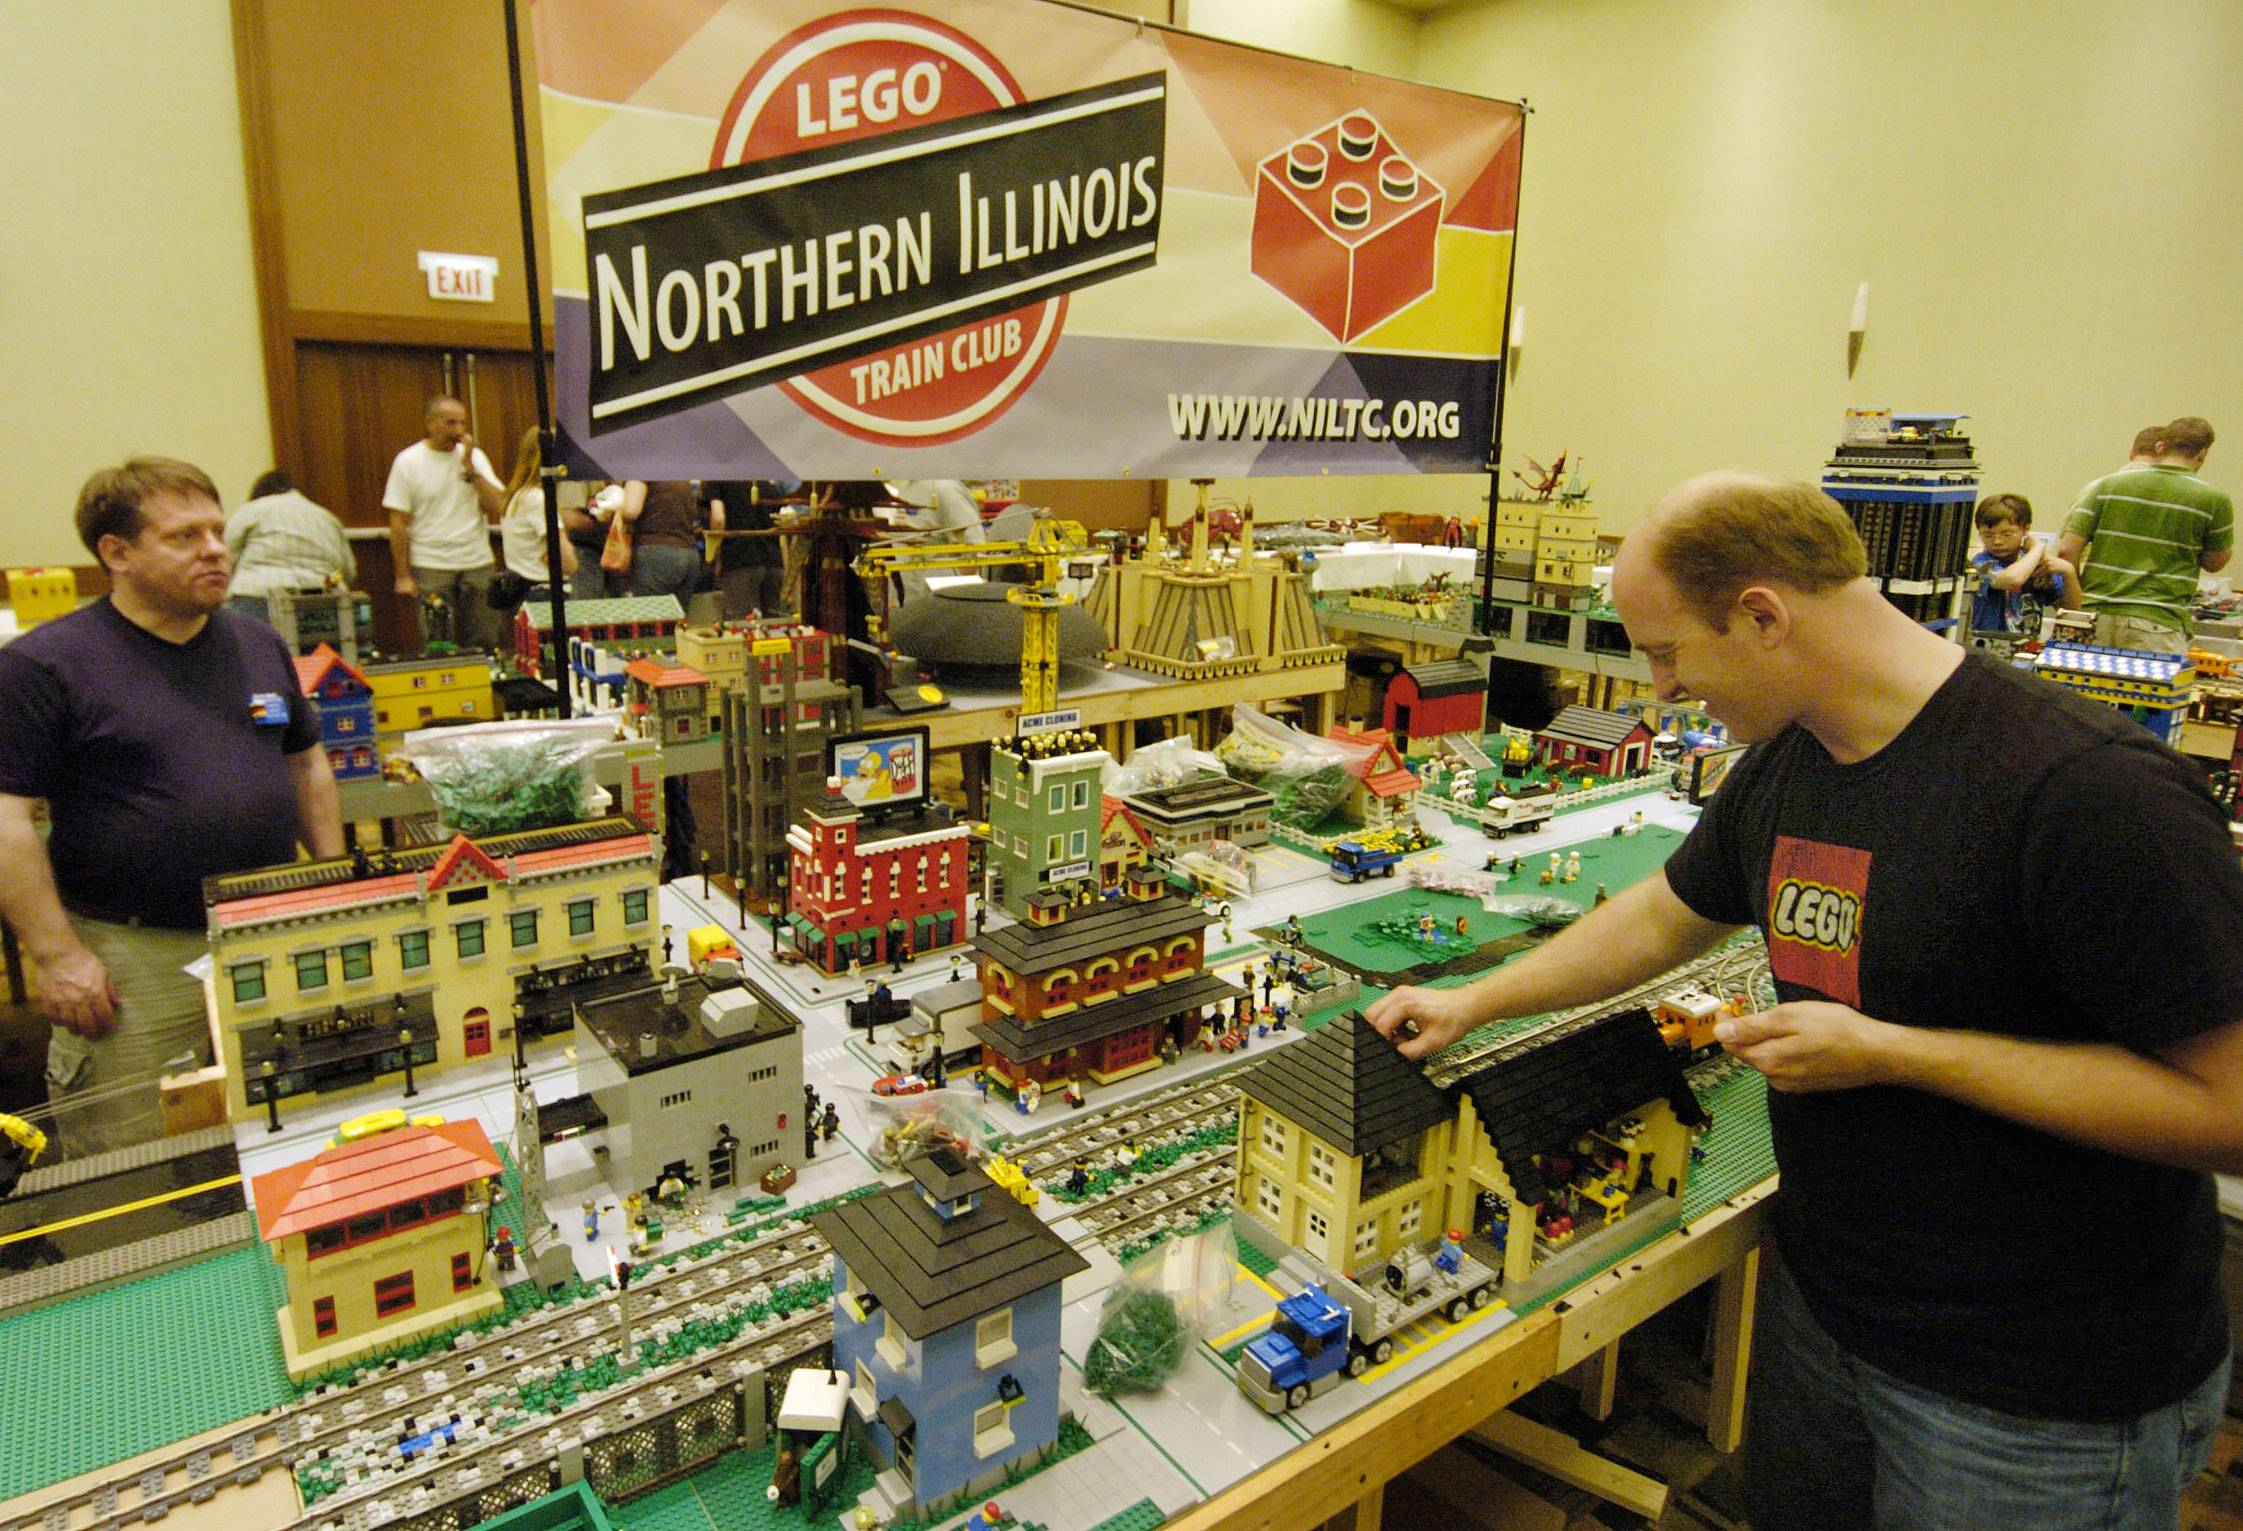 The Northern Illinois Lego Train Club set up this exhibit at the 2008 Brickworld exhibit in Wheeling.